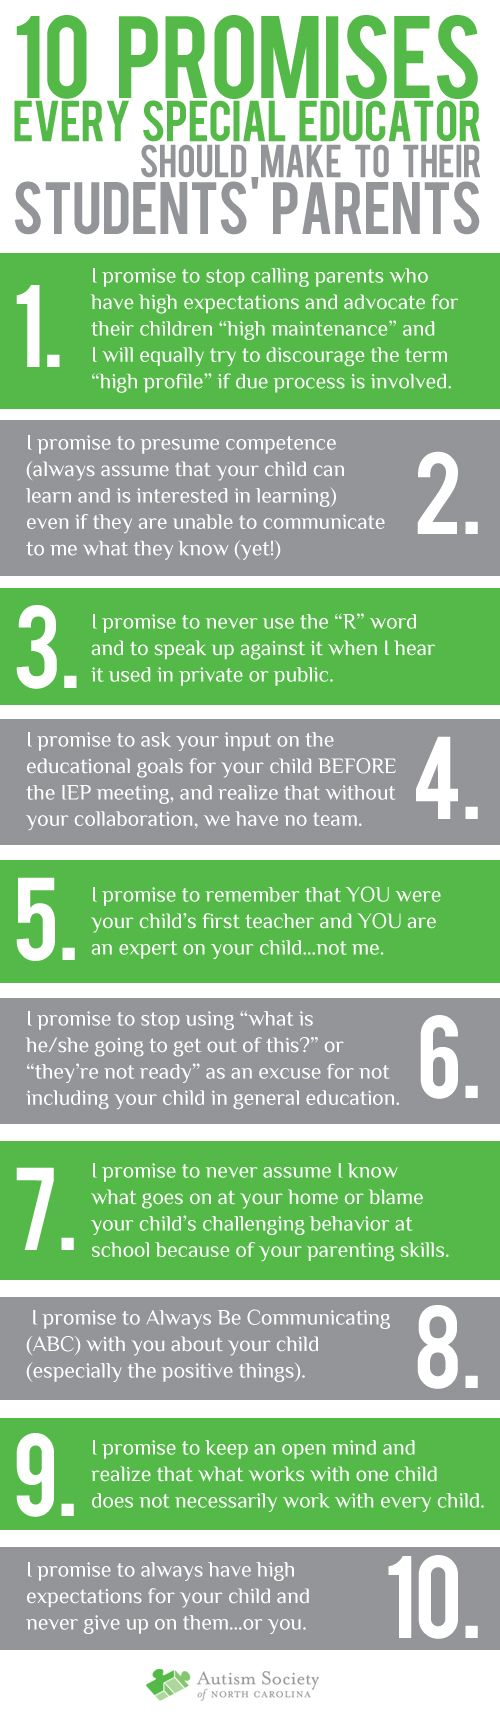 best ideas about special ed teacher learning 10 promises every special educator should make to student s parents special education teacherssped